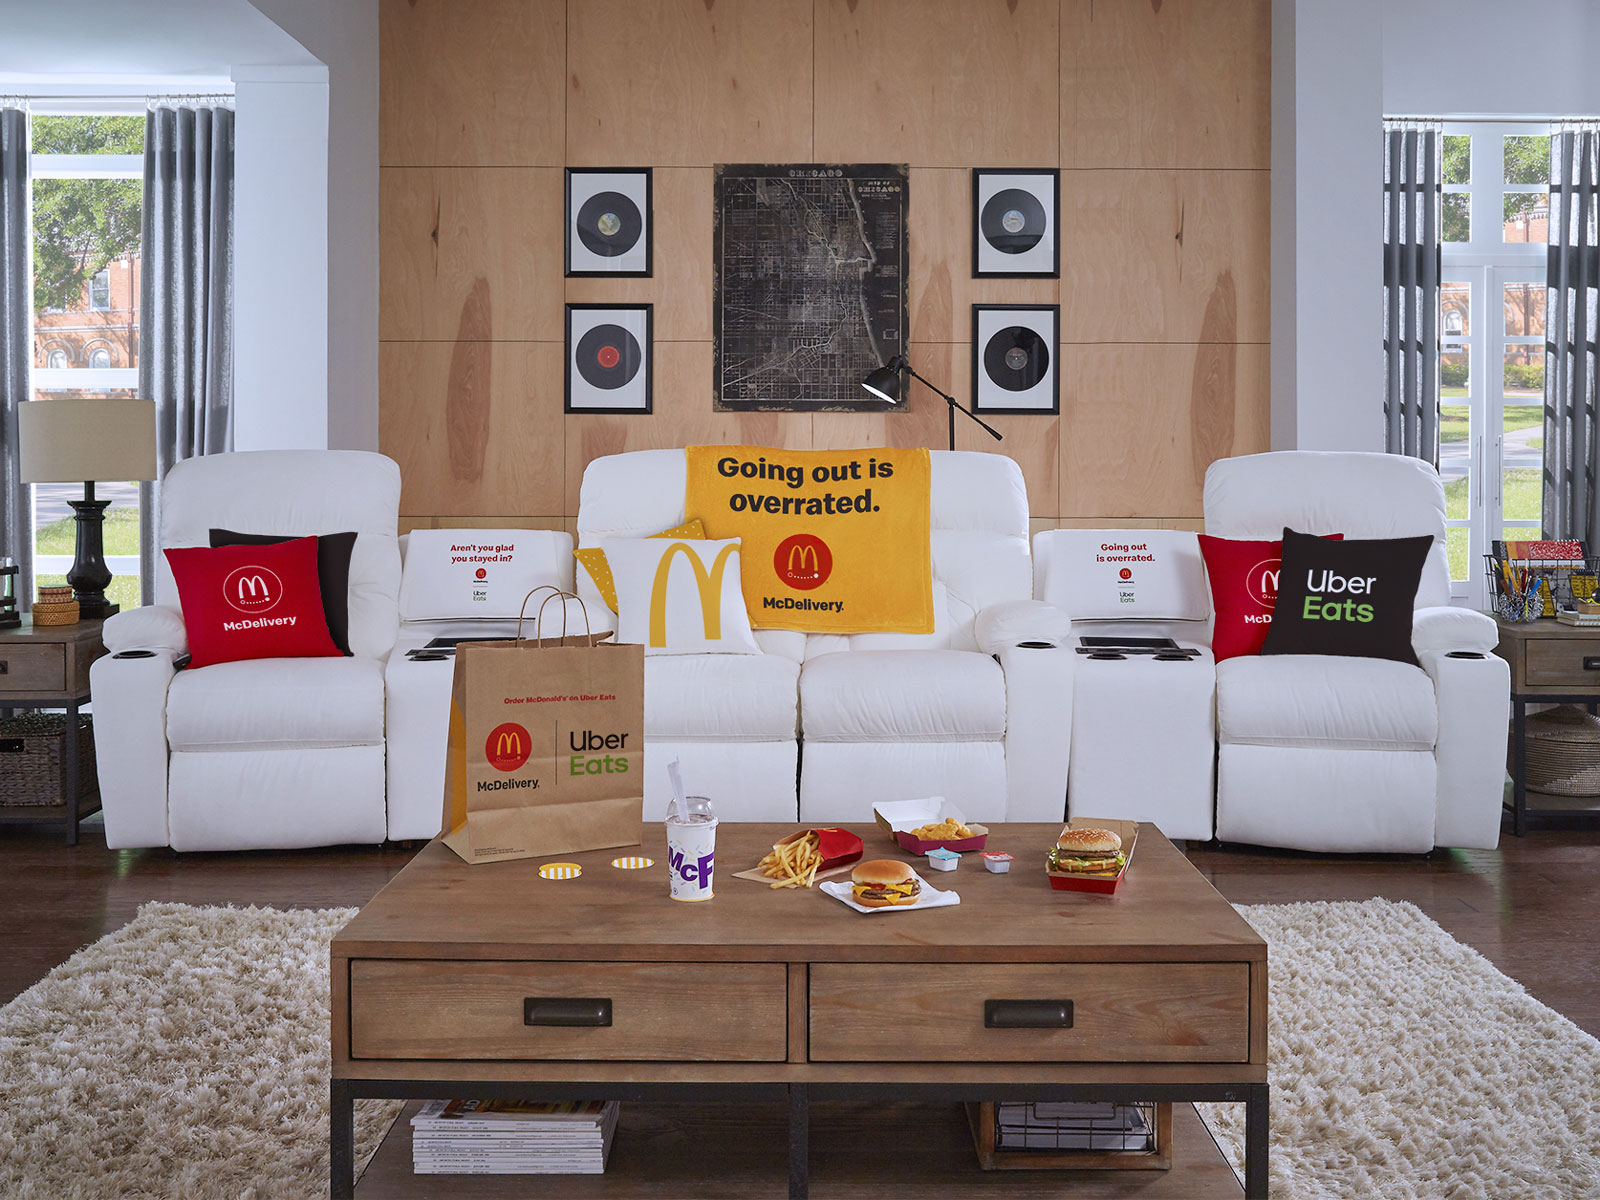 McDonald's La-Z-Boy Sofa Has a McFlurry Refrigerator Built In